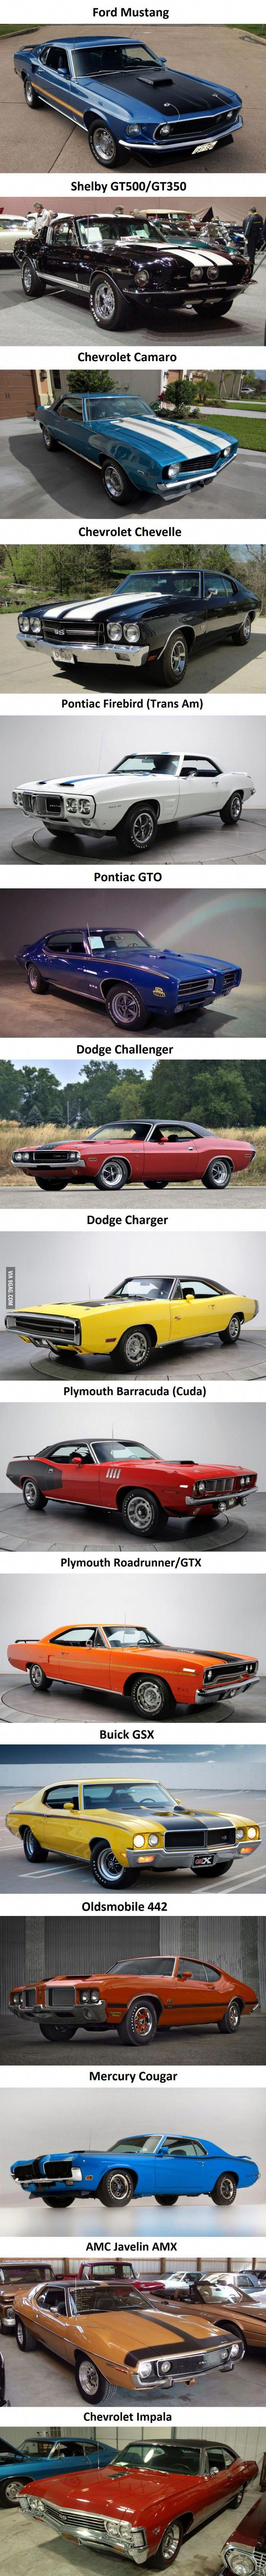 Some car porn featuring the most iconic muscle cars.